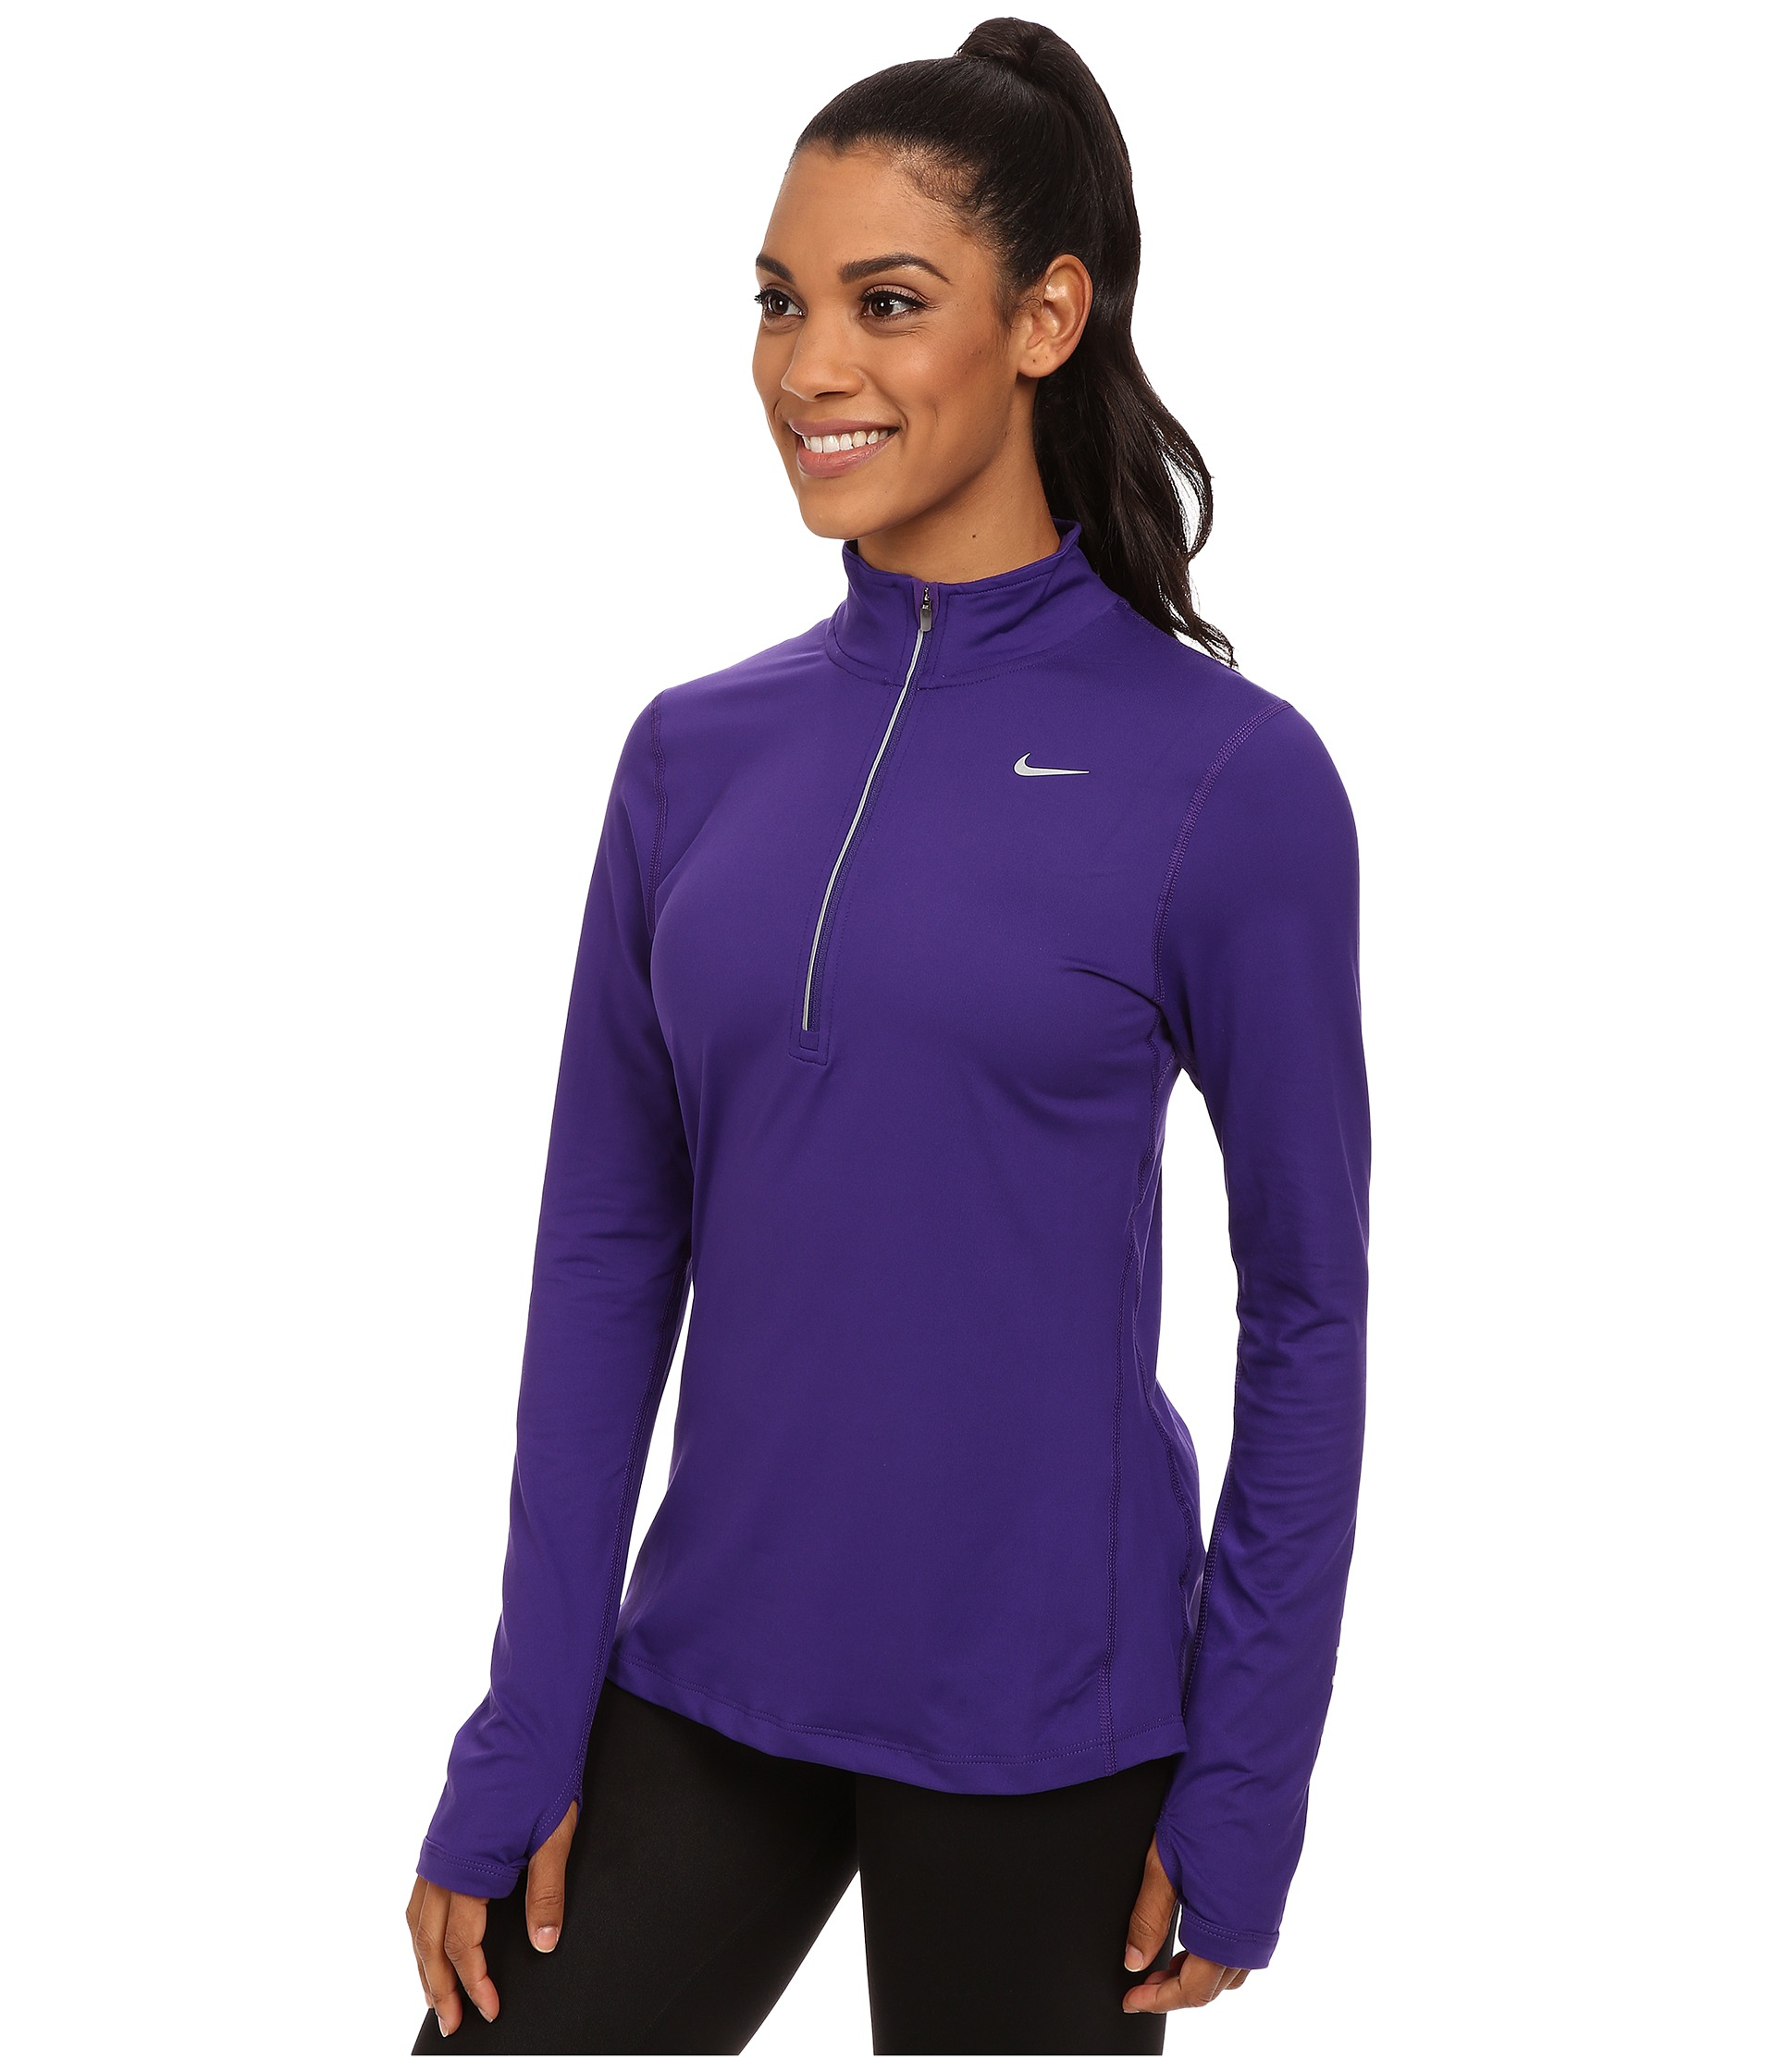 6858de70c800 Lyst - Nike Dri-fit™ Element Half Zip in Purple